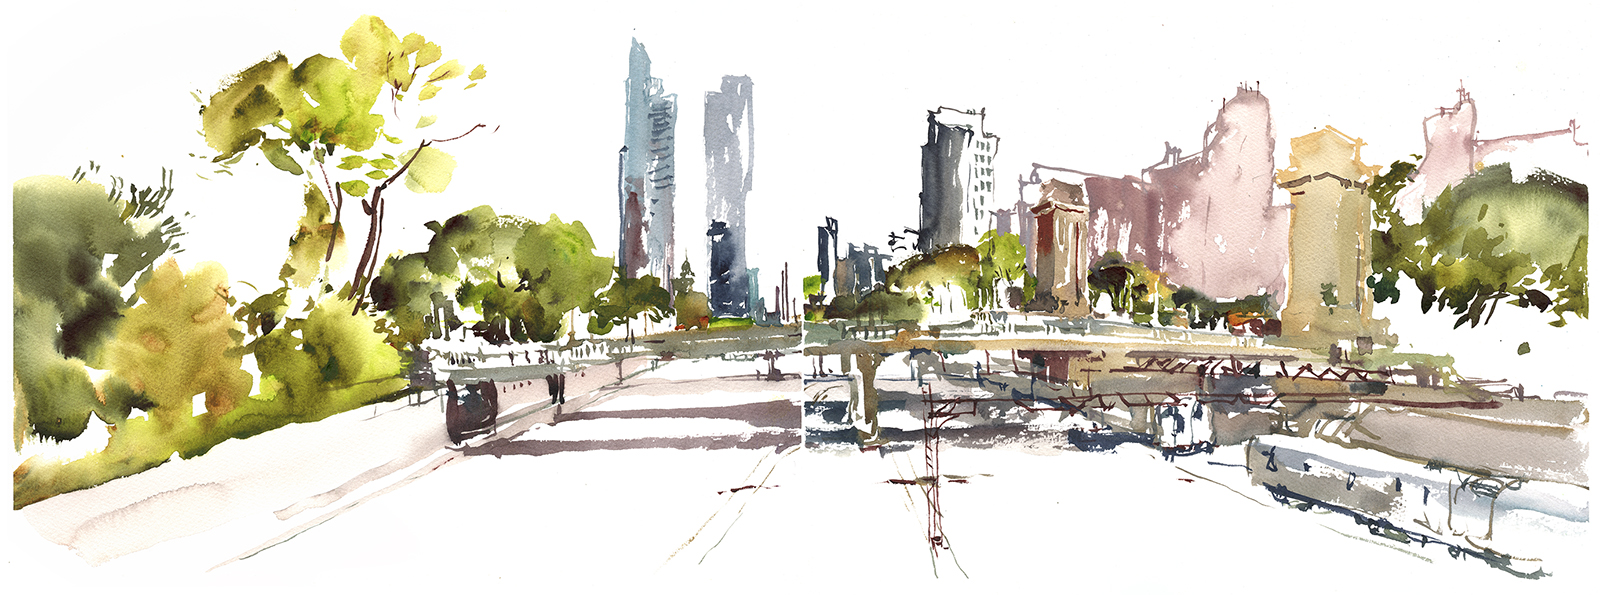 1600x595 Report From The Urban Sketchers Symposium, Chicago 2017 Citizen